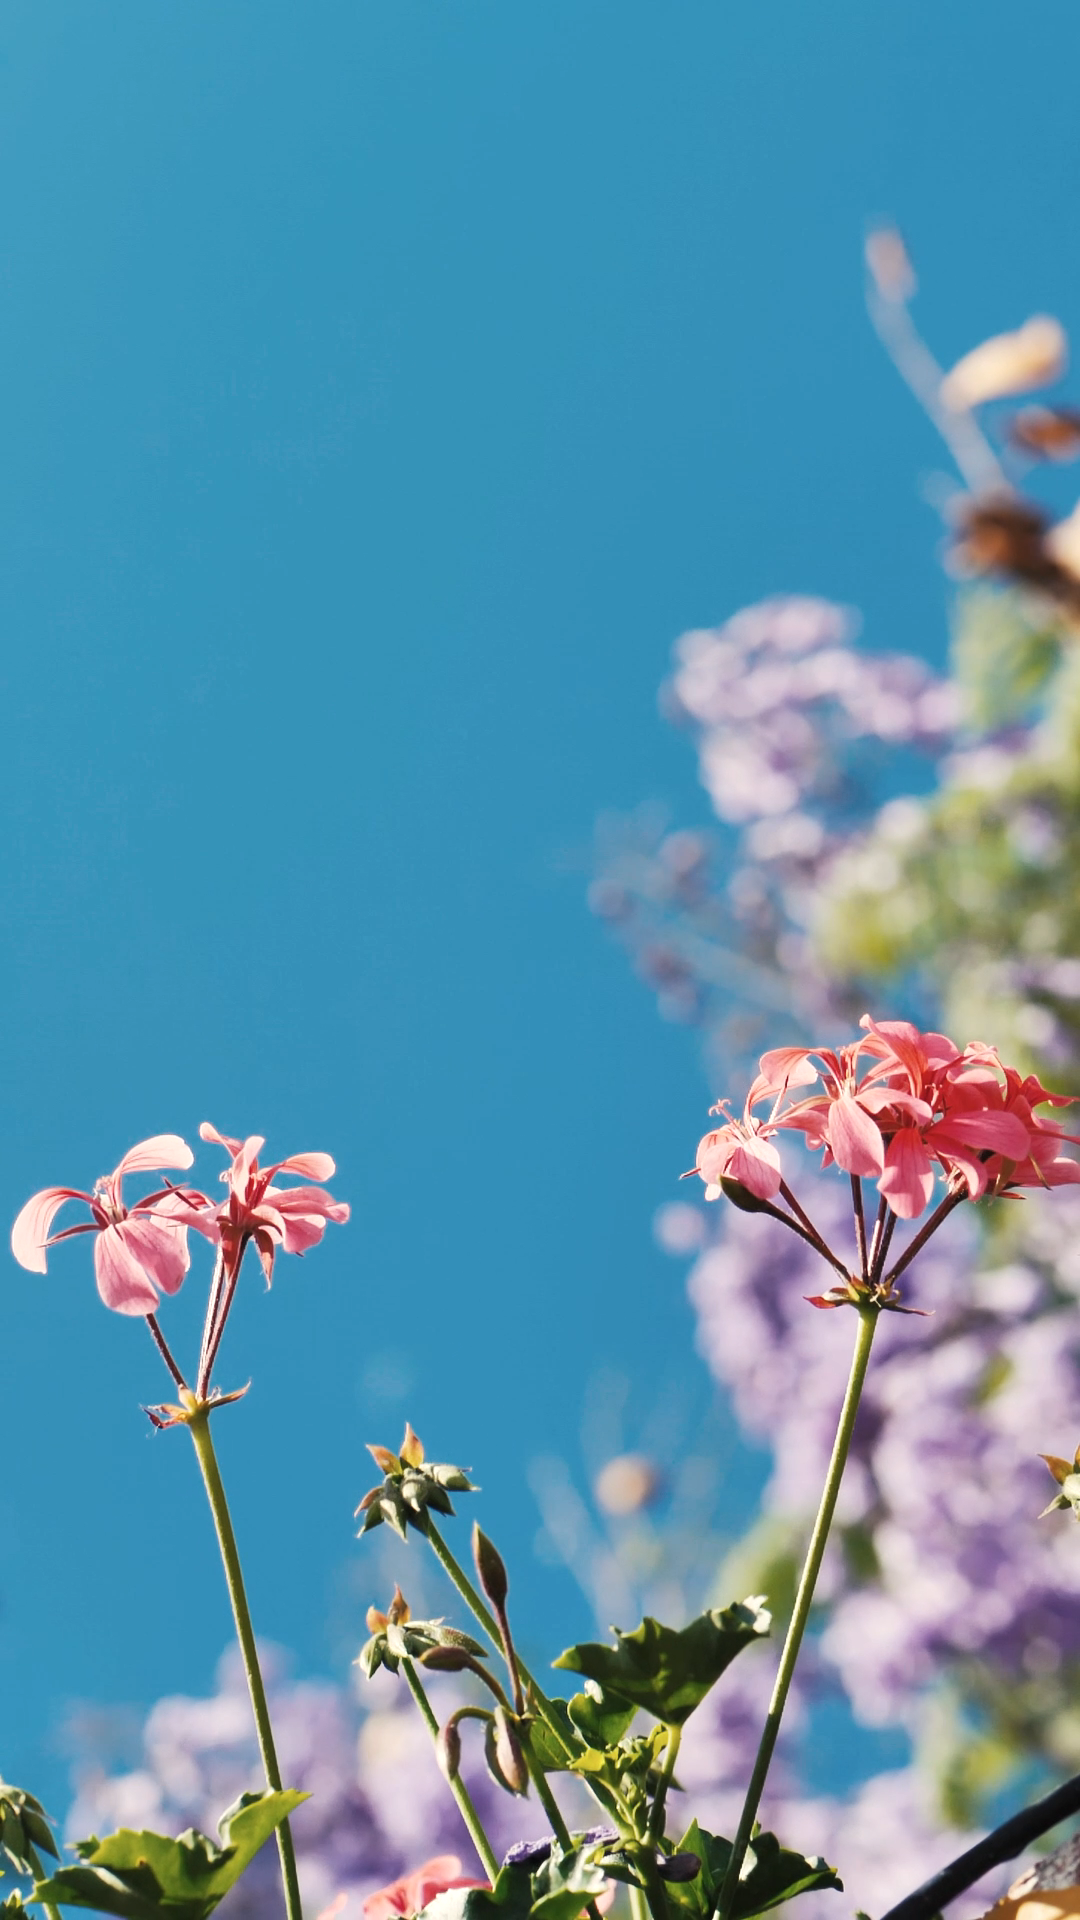 Small pink flowers move gently in a breeze, purple flowers and a blue sky in the background